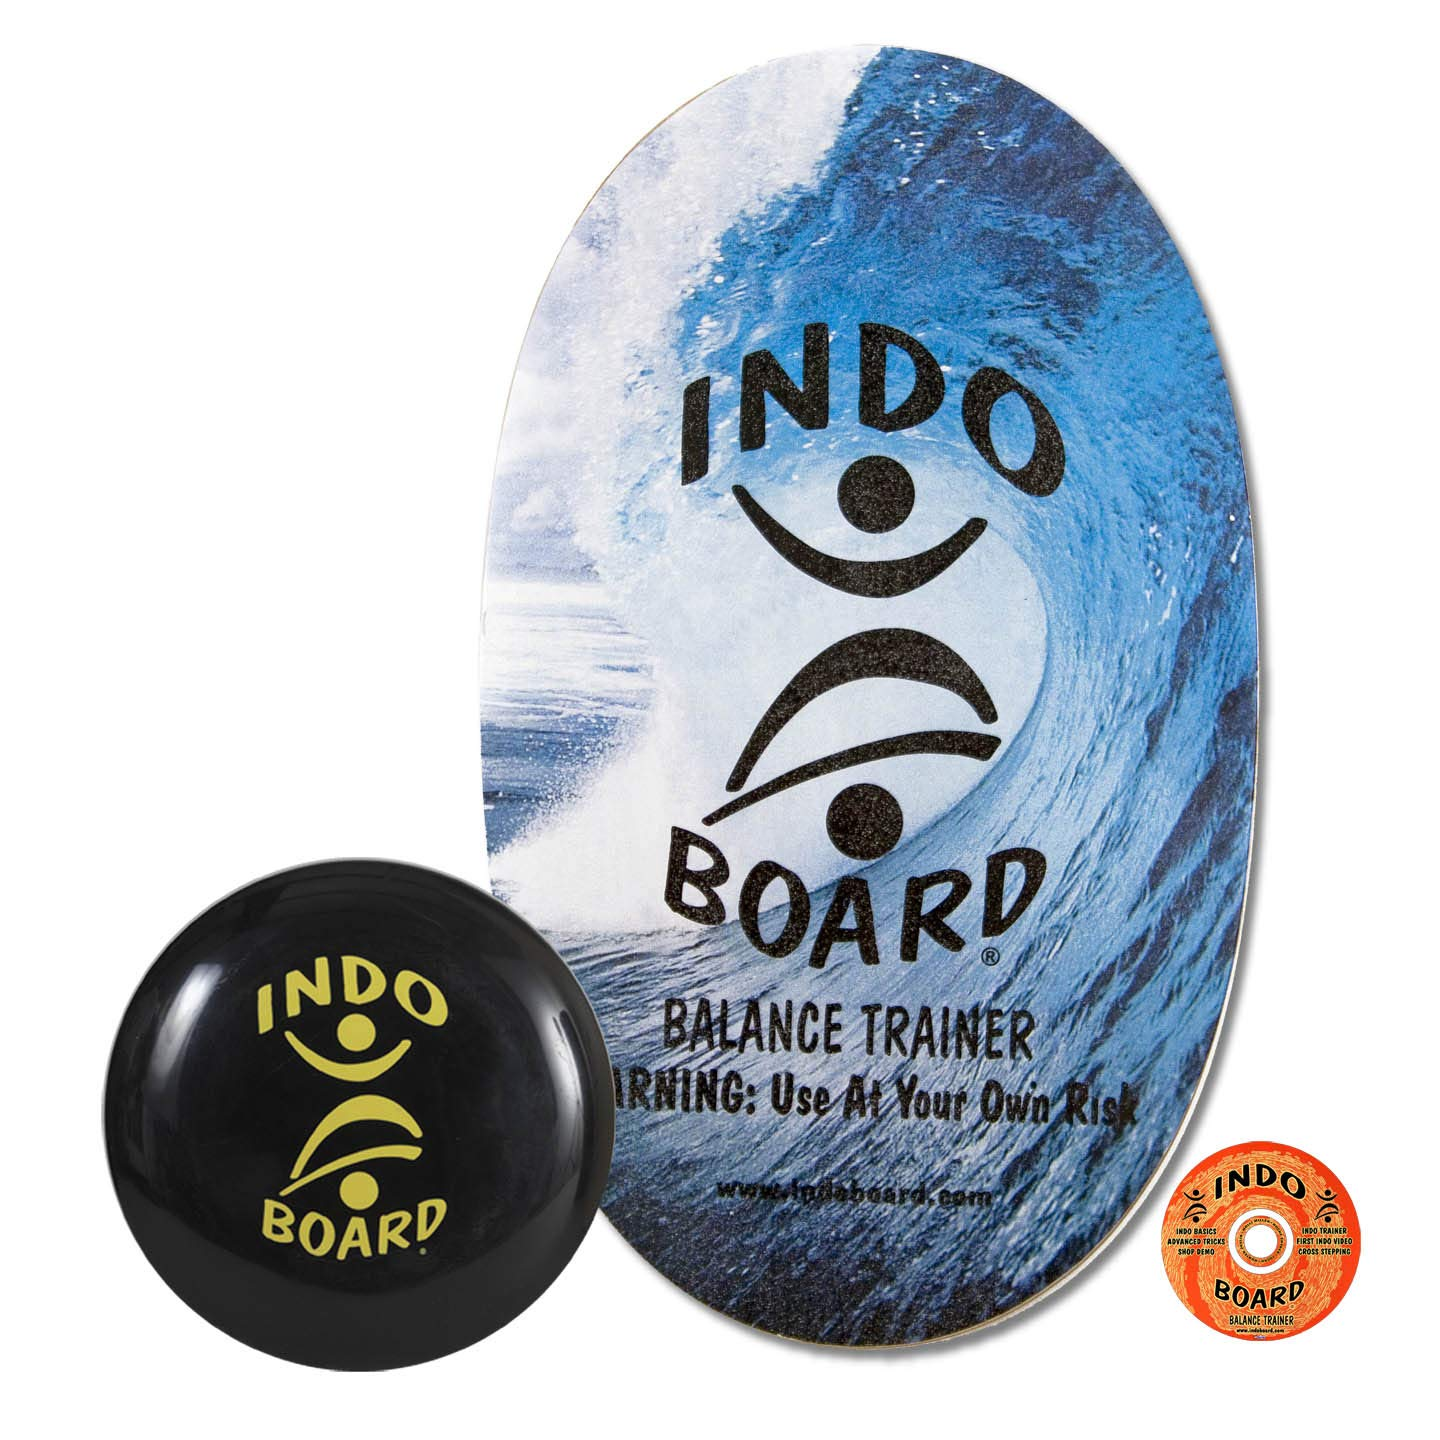 Indo Boardバランスボード元withクッション  ウェーブ B007R1DY1M